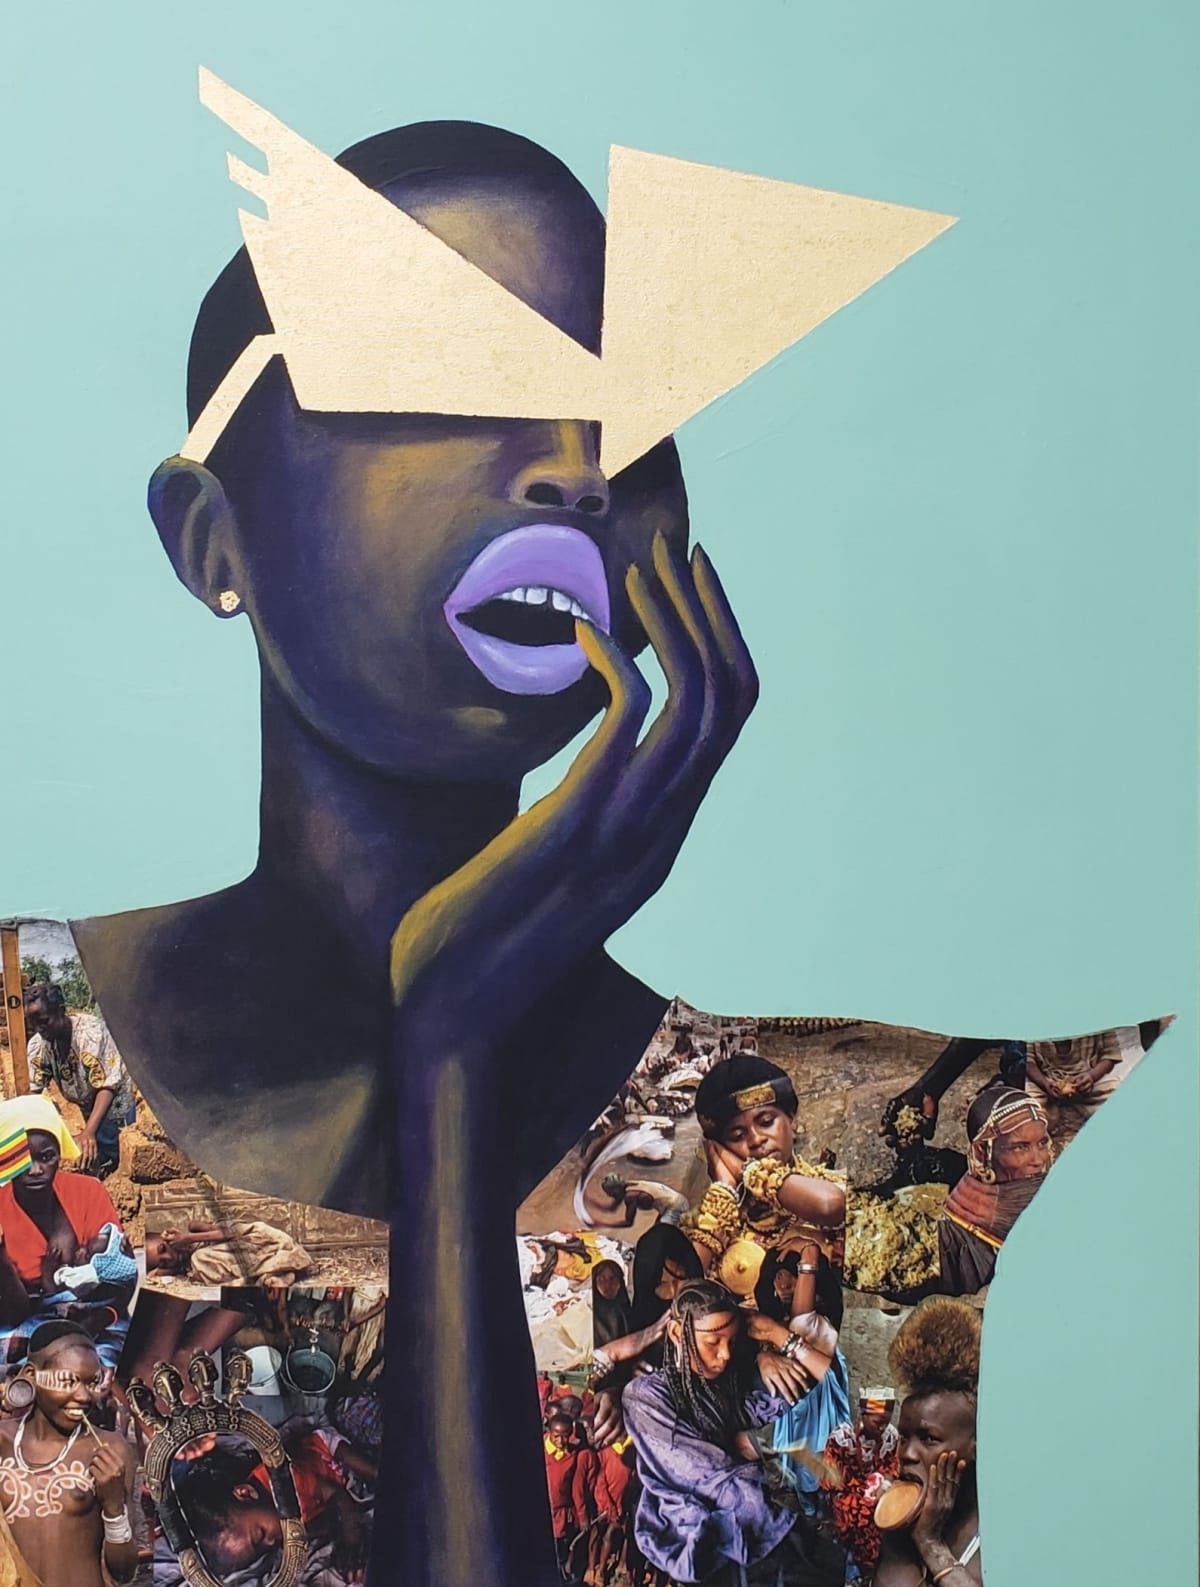 Abi Salami African Future Looks Bright, 2019 Collage, acrylic and gold leaf on canvas 40 x 30 x 1.5 inches